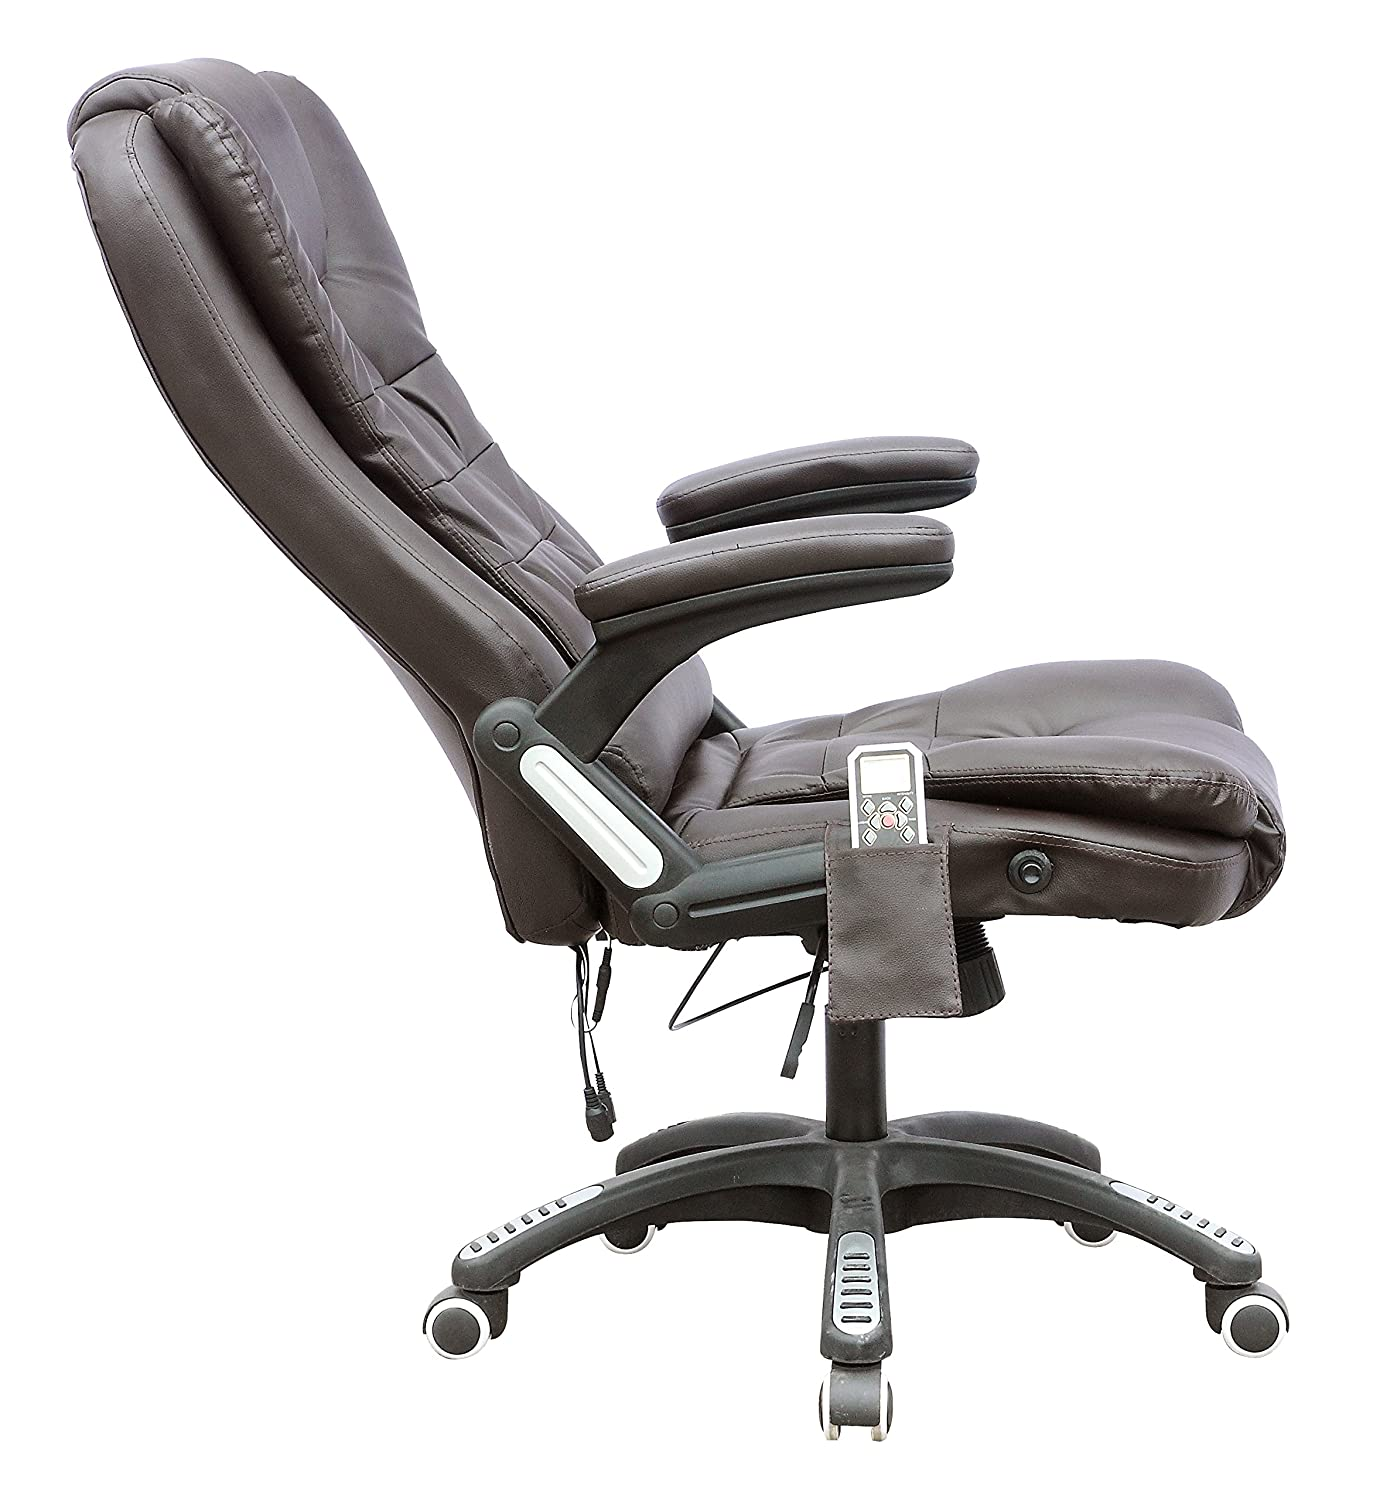 FoxHunter Luxury Leather 6 Point Massage fice puter Chair